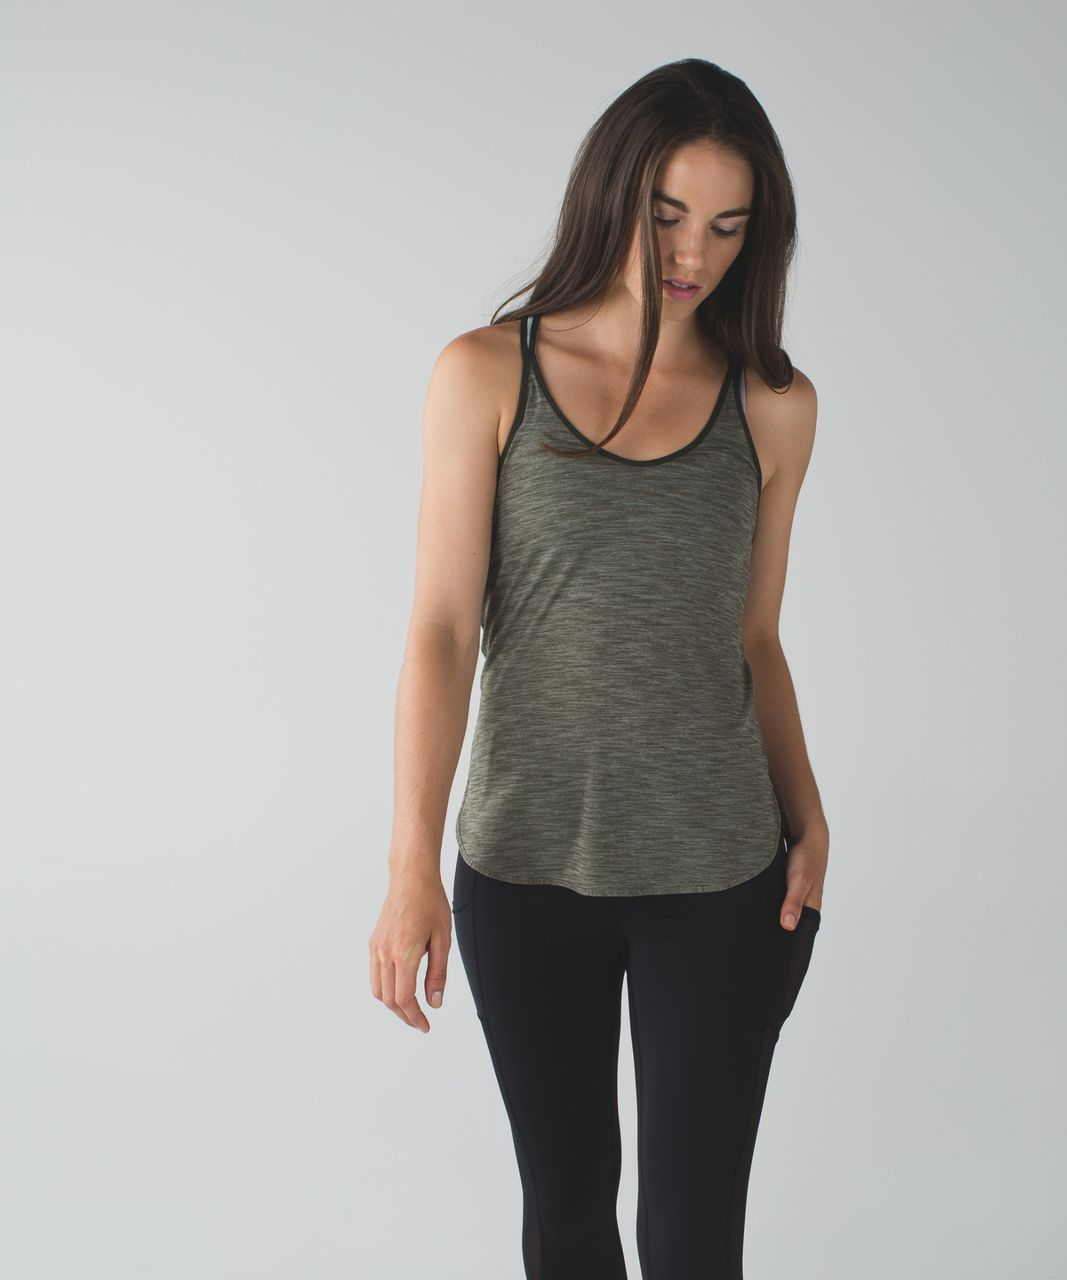 Lululemon What The Sport Singlet II - Heathered Fatigue Green